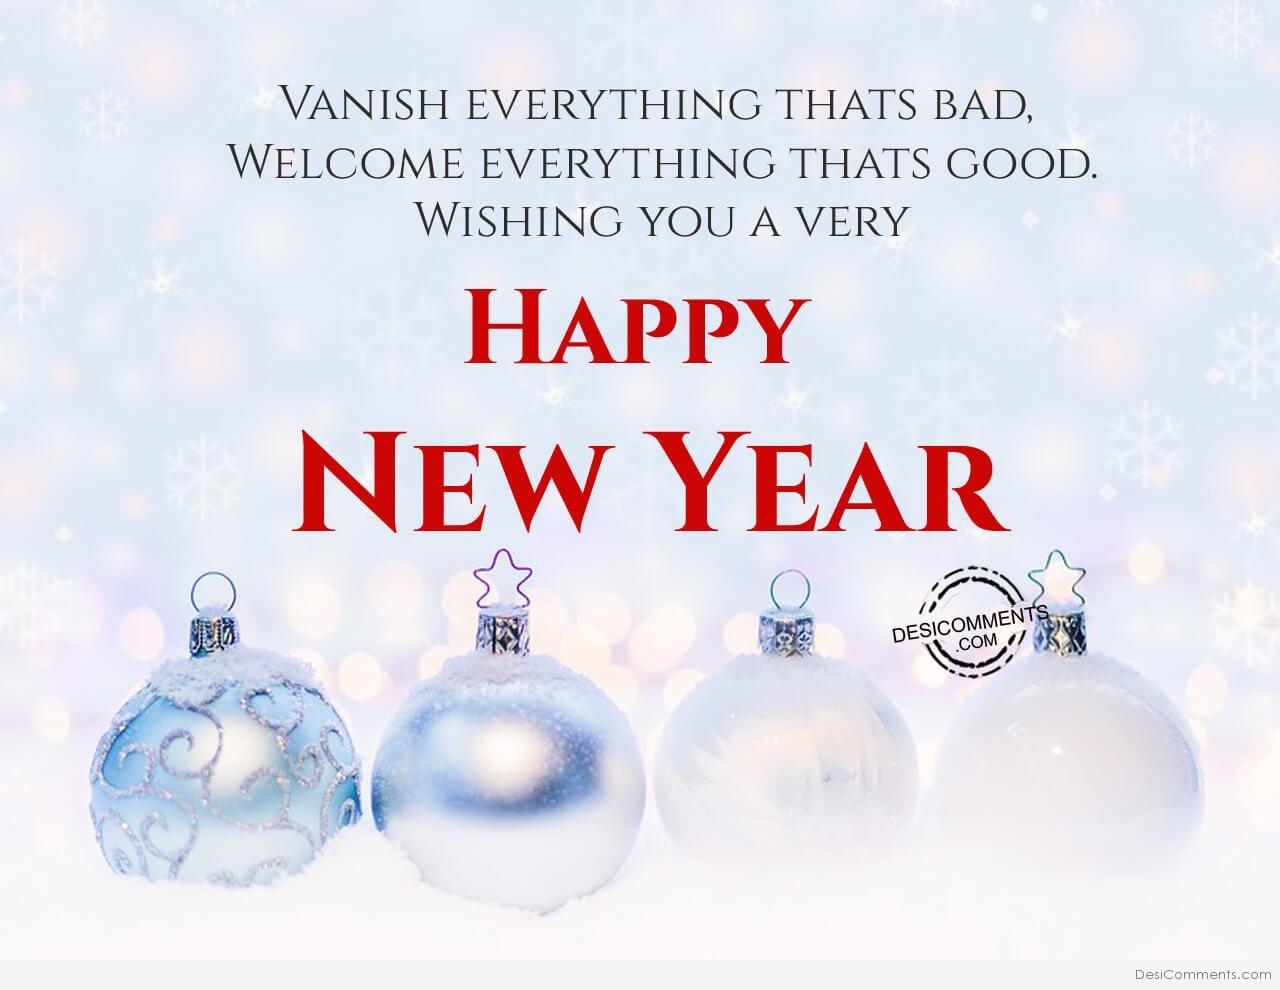 Happy New Year Pictures, Images, Graphics